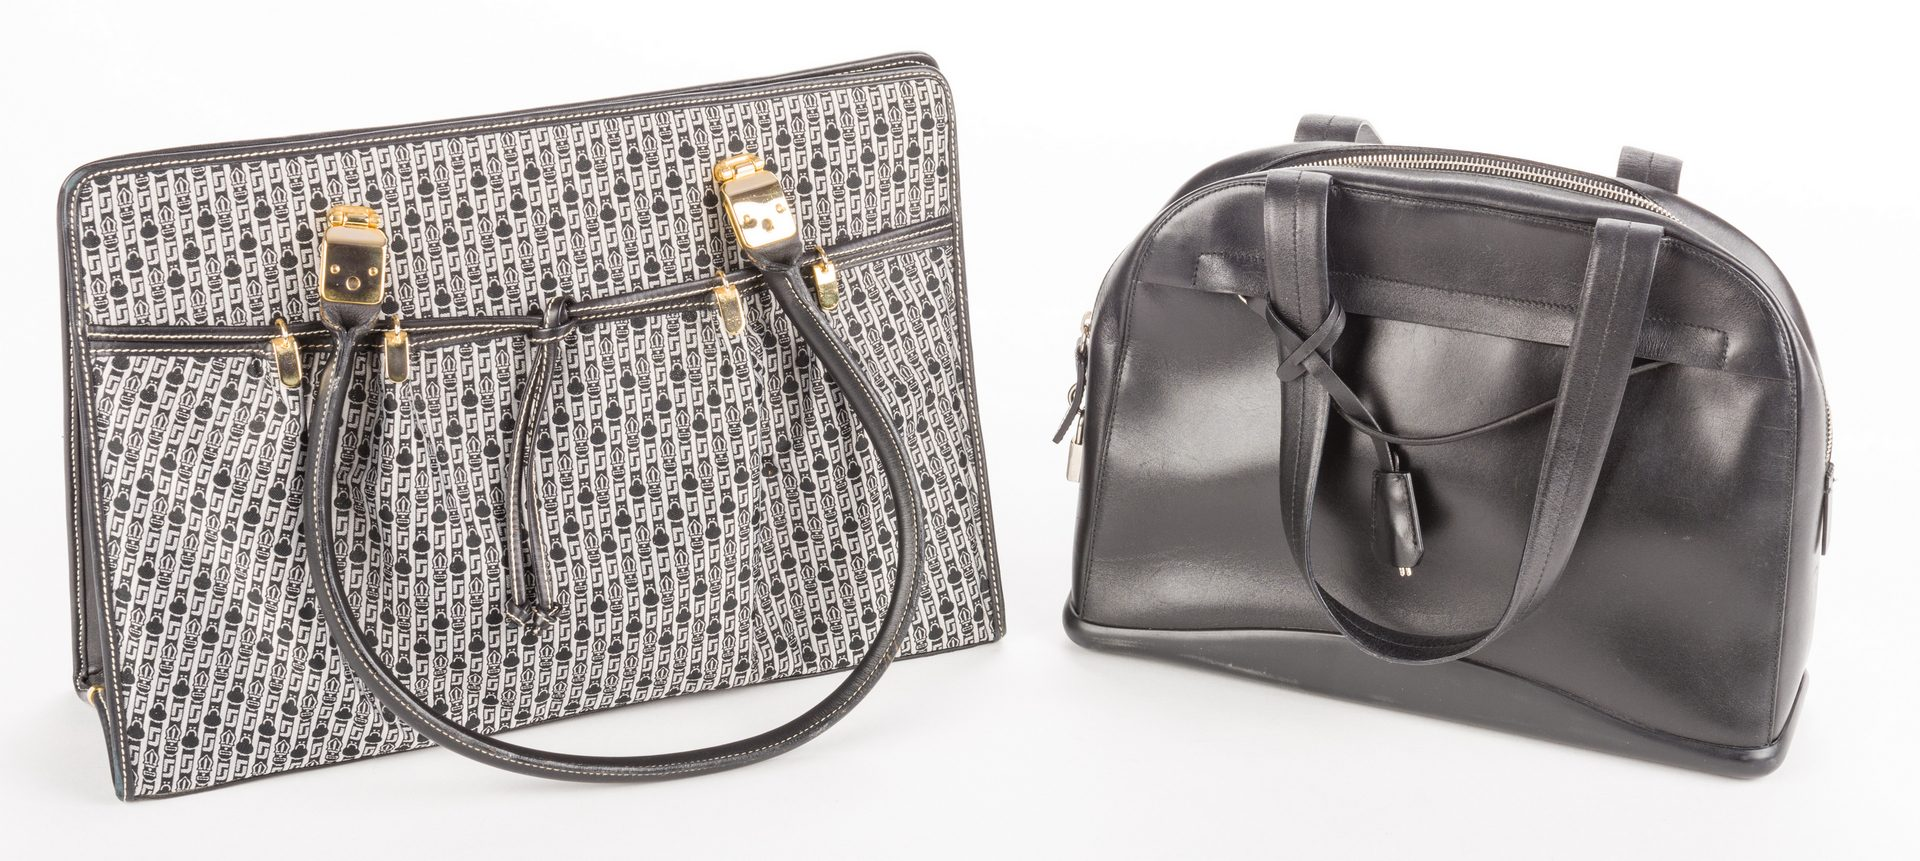 Lot 839: 2 Designer Handbags, inc. Judith Leiber and Prada.